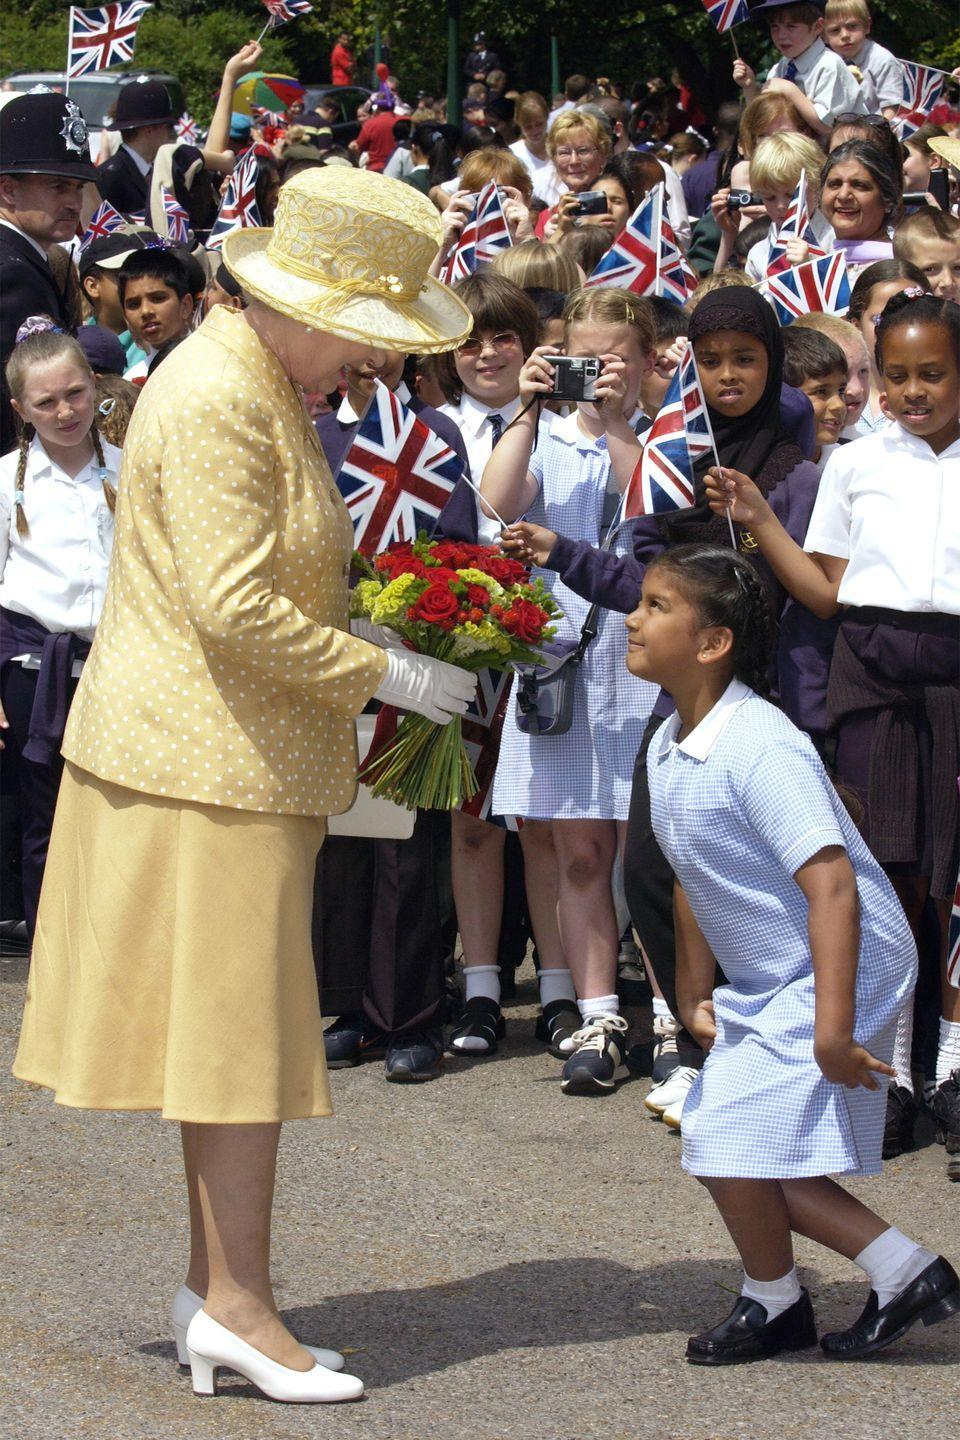 <p>QEII looked delighted to meet a young girl who greeted her with a curtsey. The royal enjoyed a picnic at Gunnersbury Park celebrating the diversity of West London.<br></p>